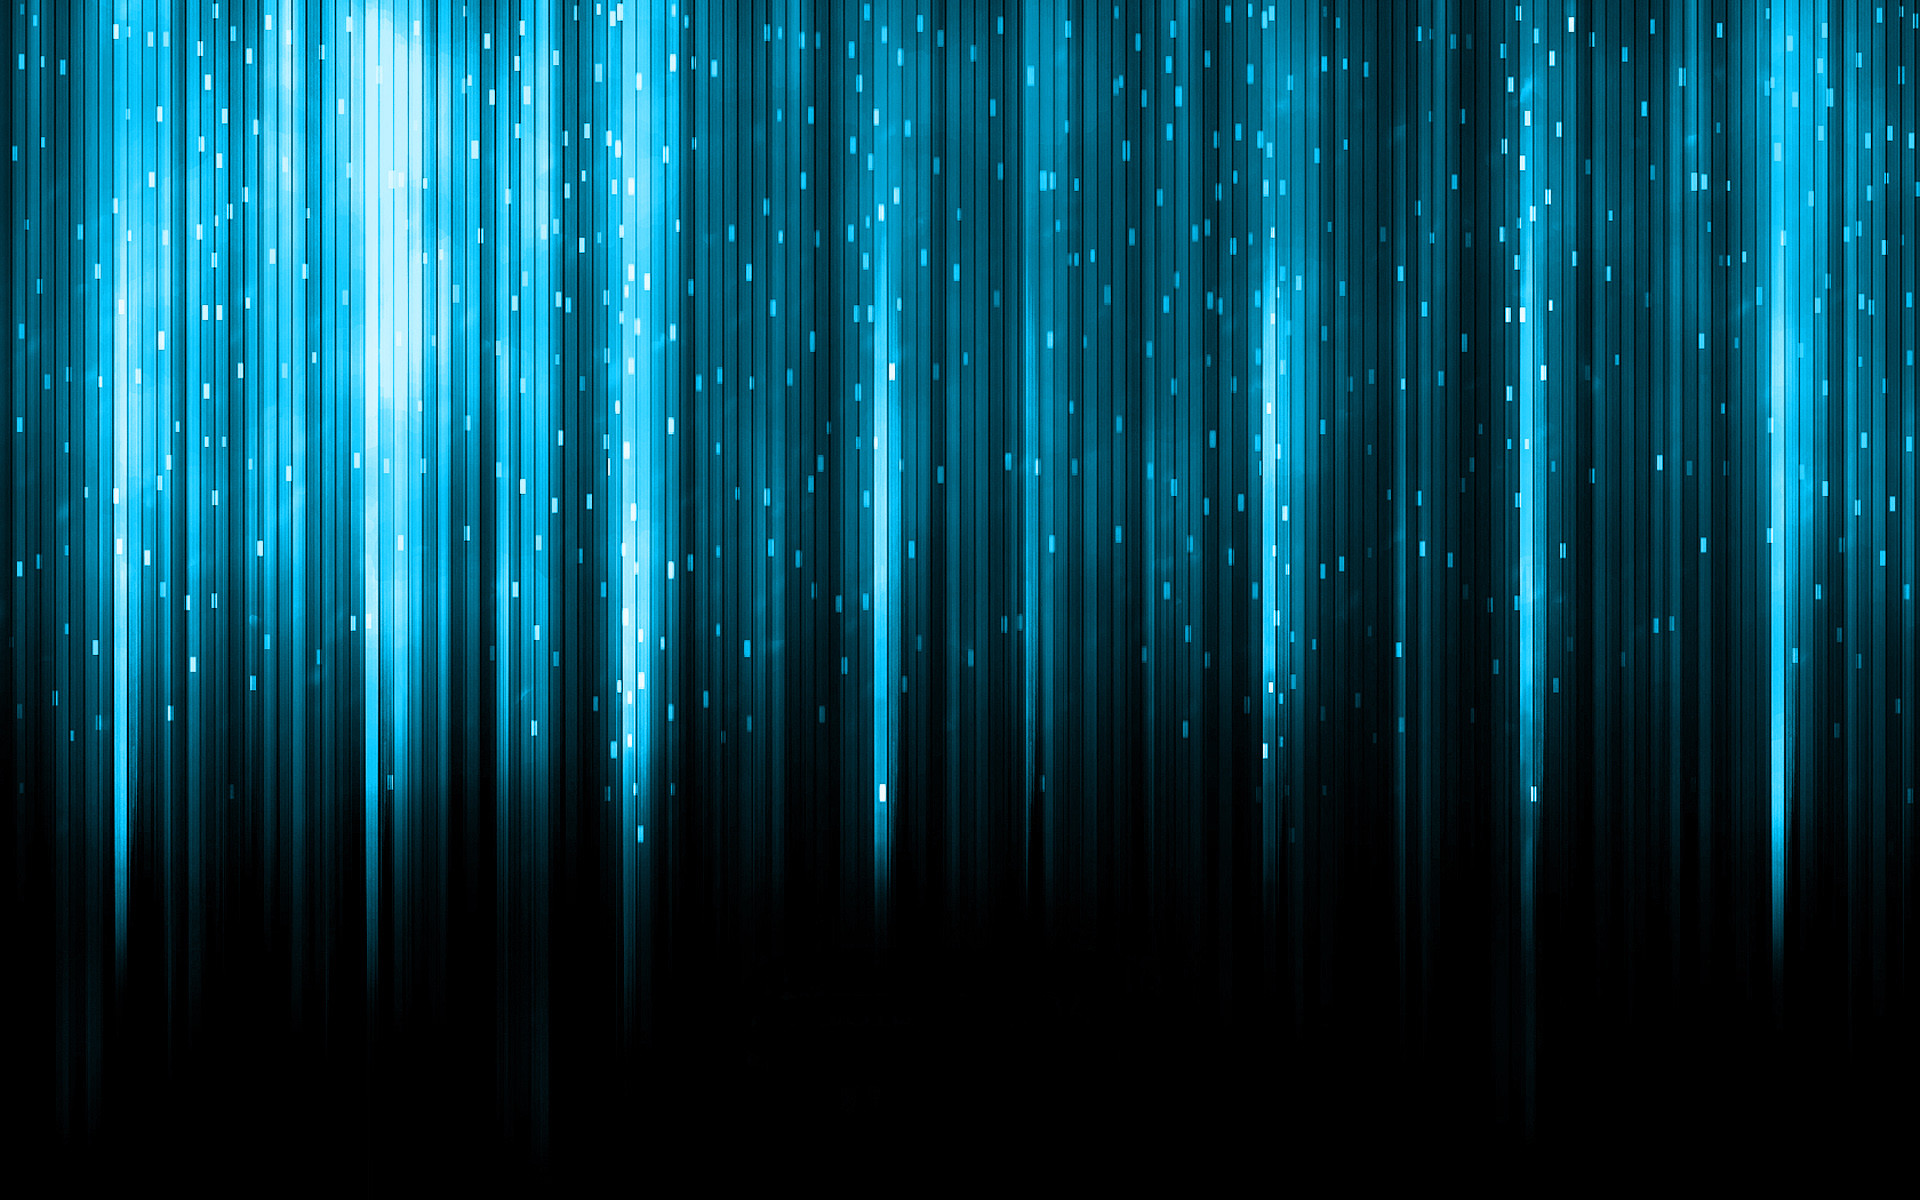 Awesome Dark Blue Color High Quality In HD Wallpaper Widescreen